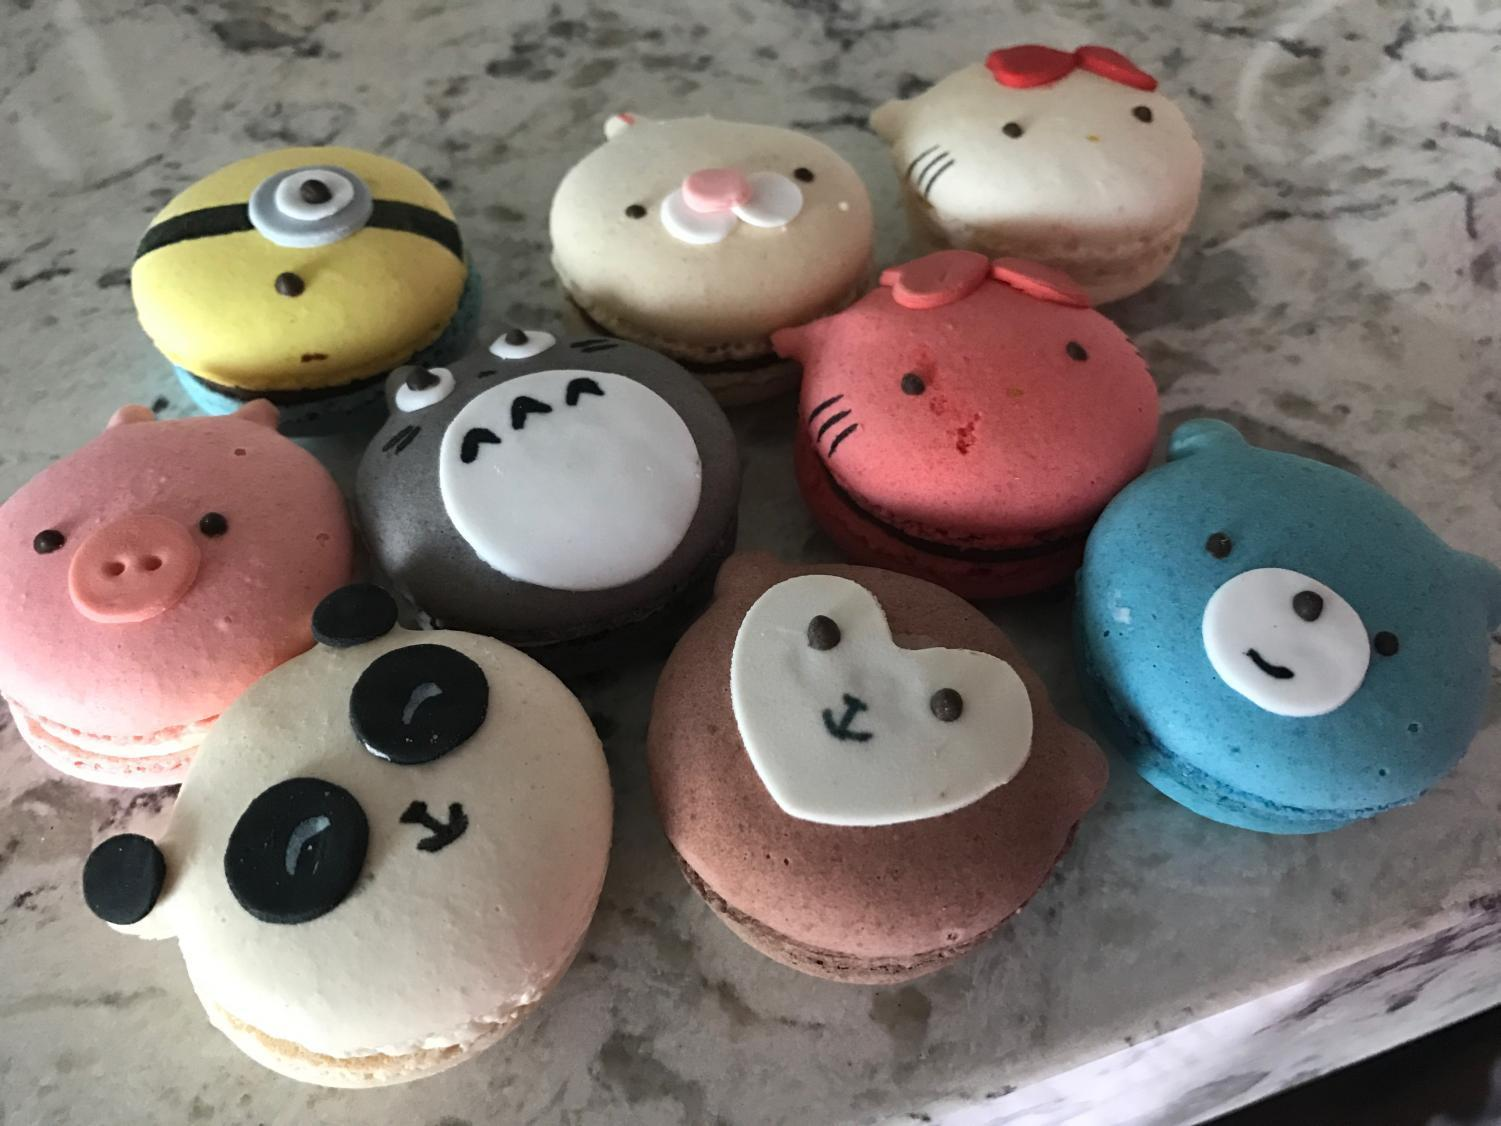 Although these macaroons were cute in presentation, they didn't live up to Feng's culinary expectations.